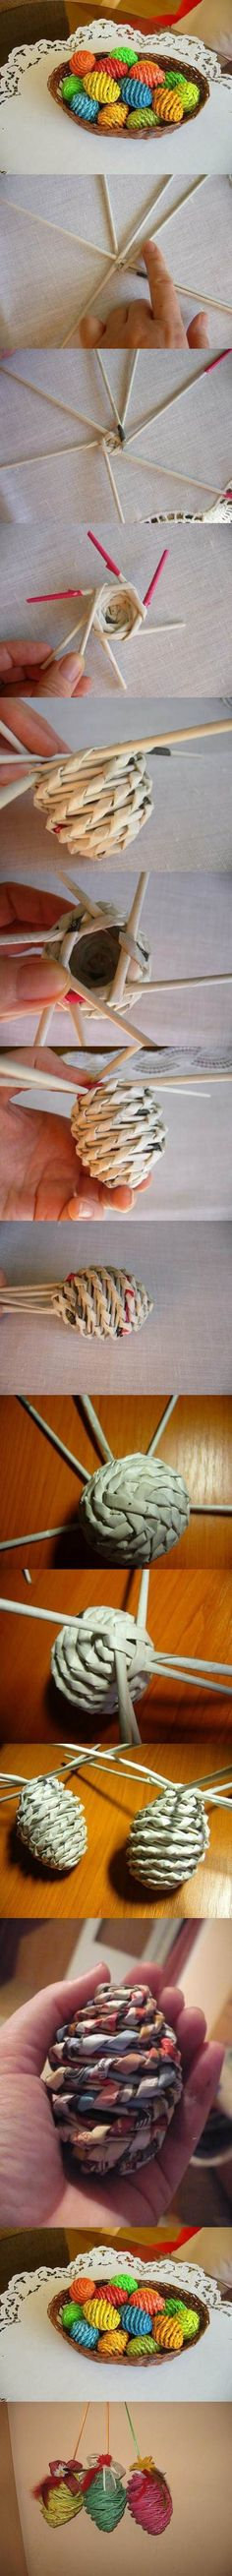 DIY Woven Paper Easter Eggs 2 neat craft for pathfinders and Rangers Easter Crafts, Fun Crafts, Diy And Crafts, Arts And Crafts, Creative Crafts, Spring Crafts, Holiday Crafts, Magazine Crafts, Paper Weaving